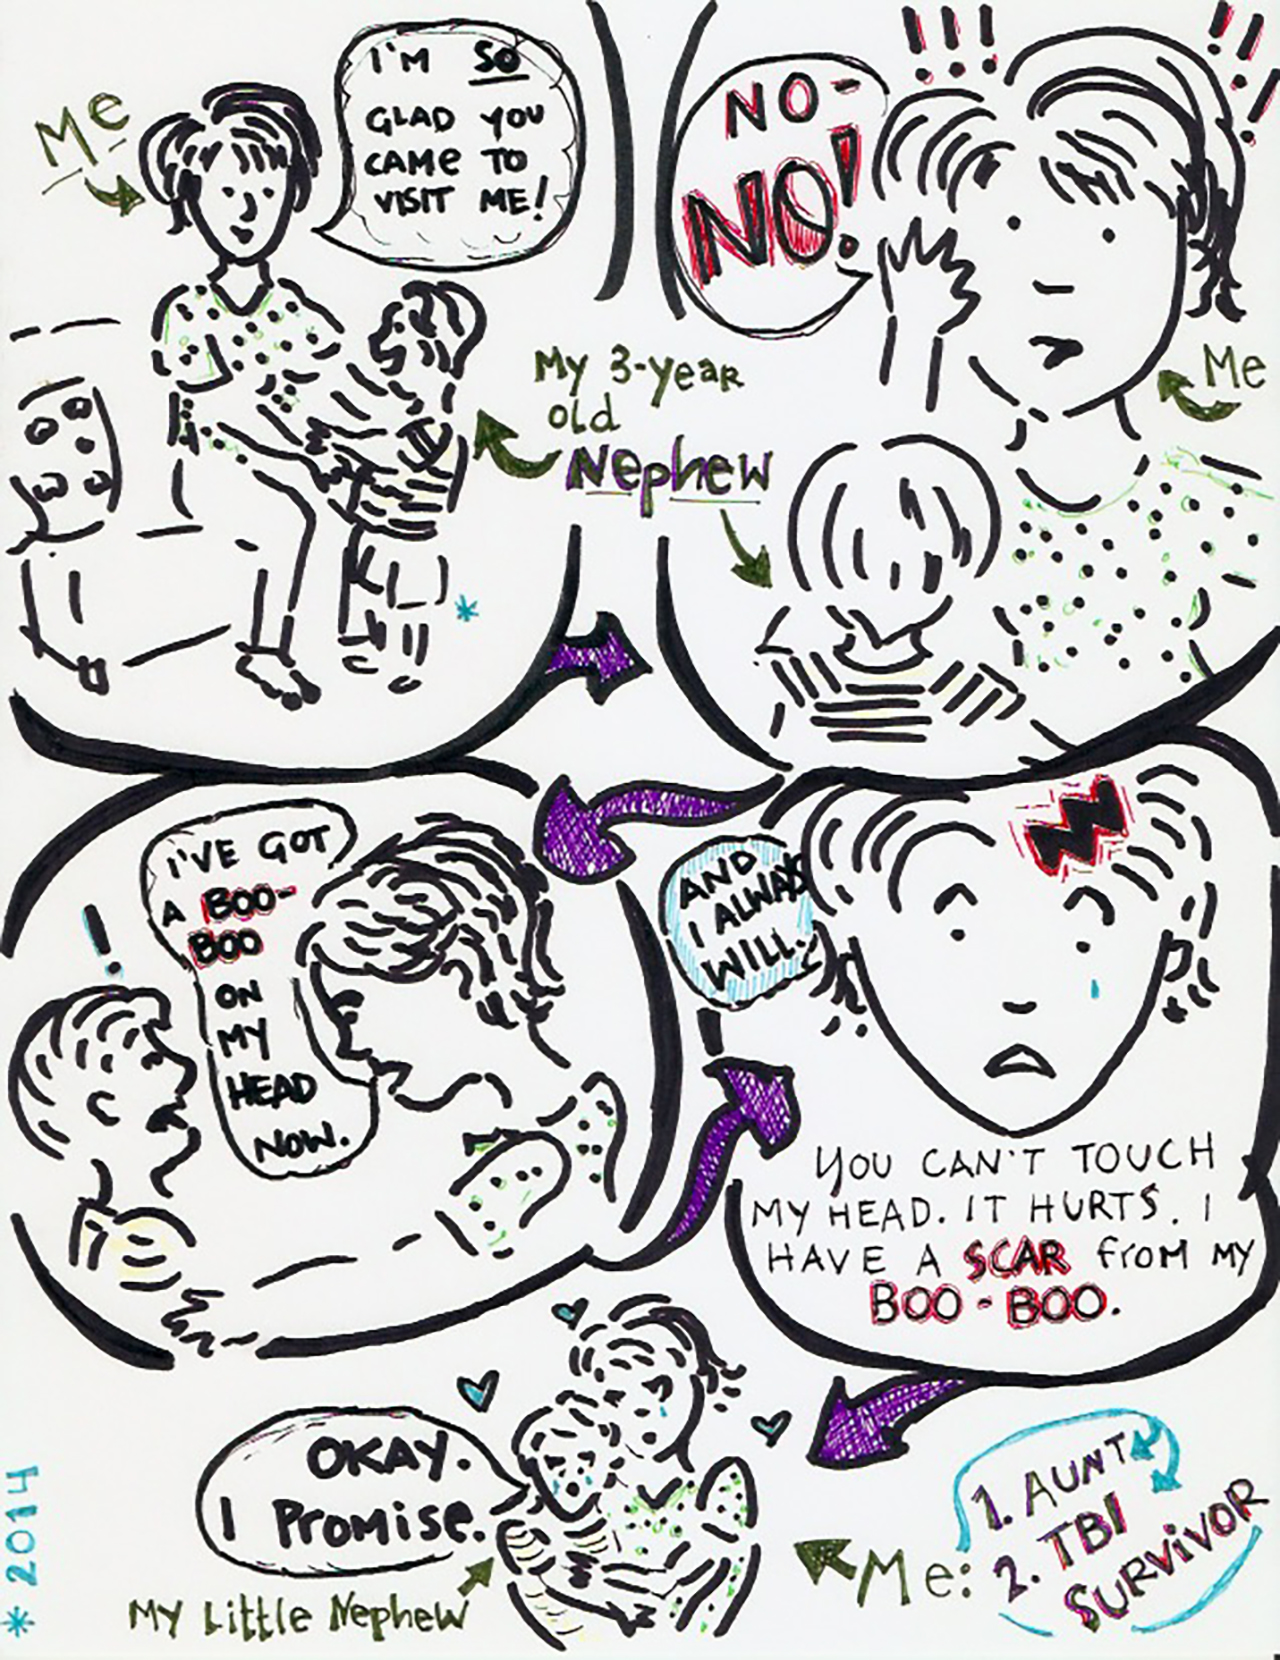 Comic illustration by Teresa Reilly in which she explains TBI to her nephew.